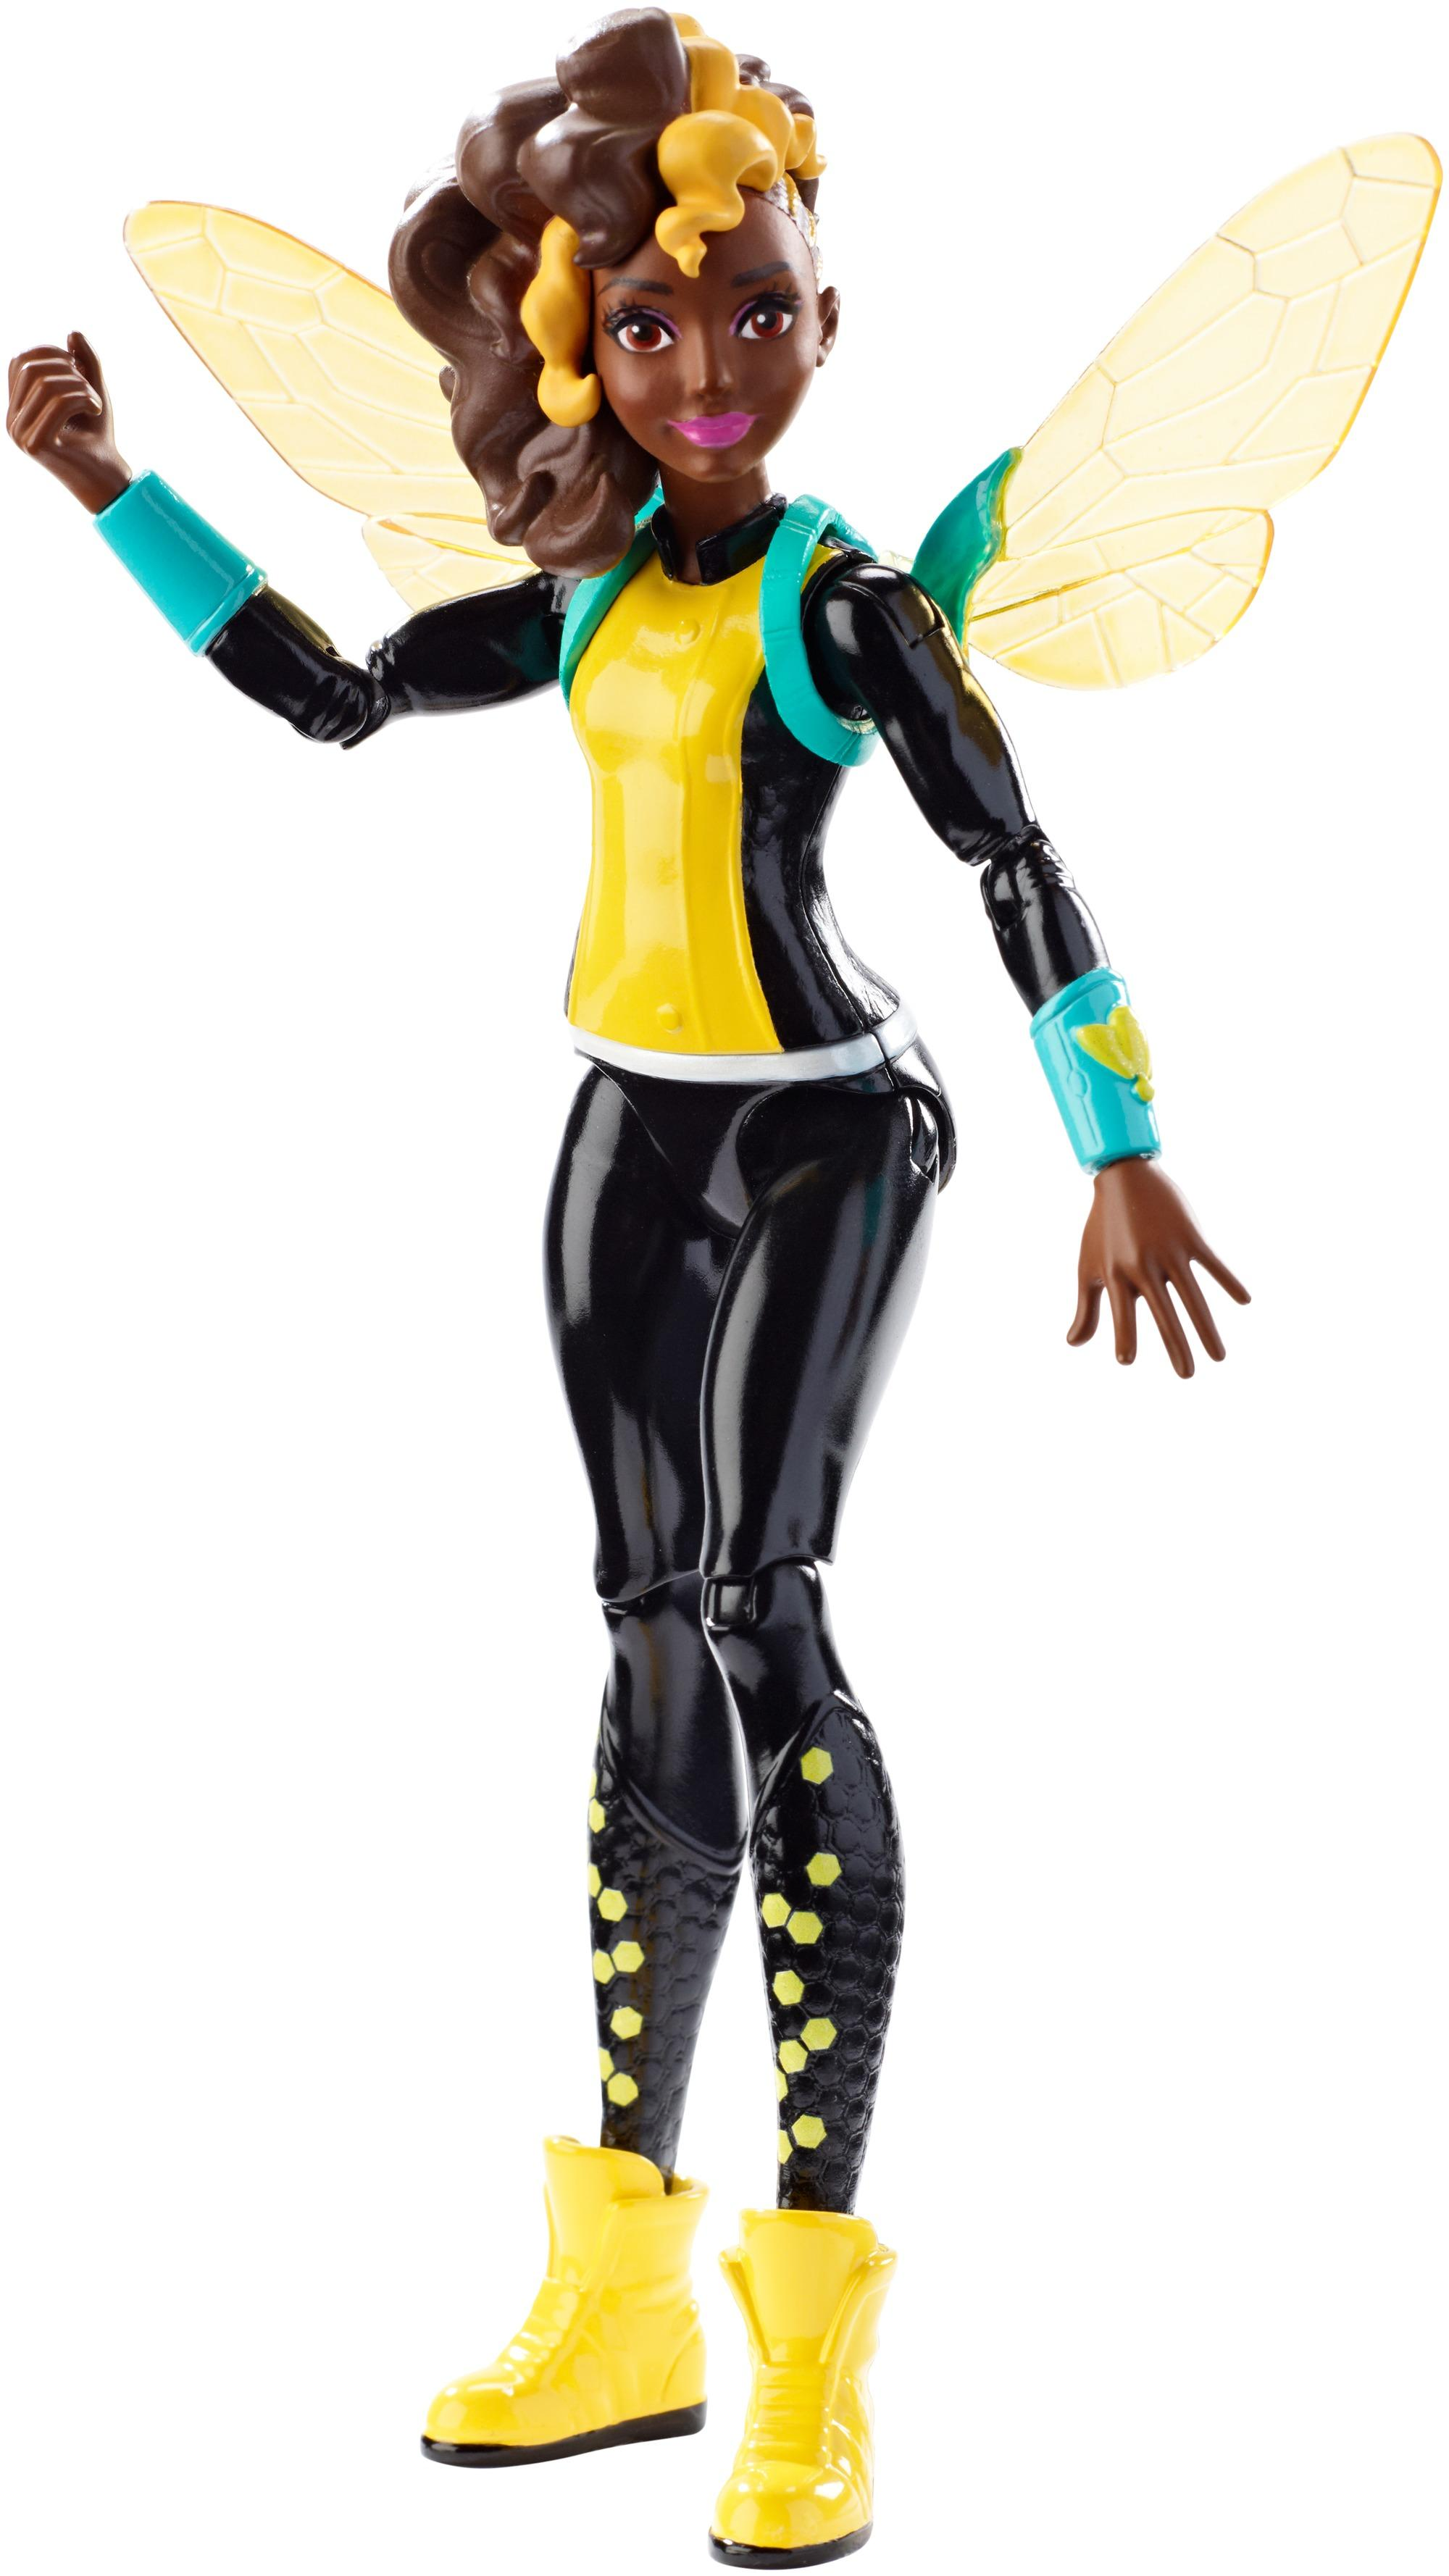 Girl Toy Figures : Amazon dc super hero girls bumble bee quot action